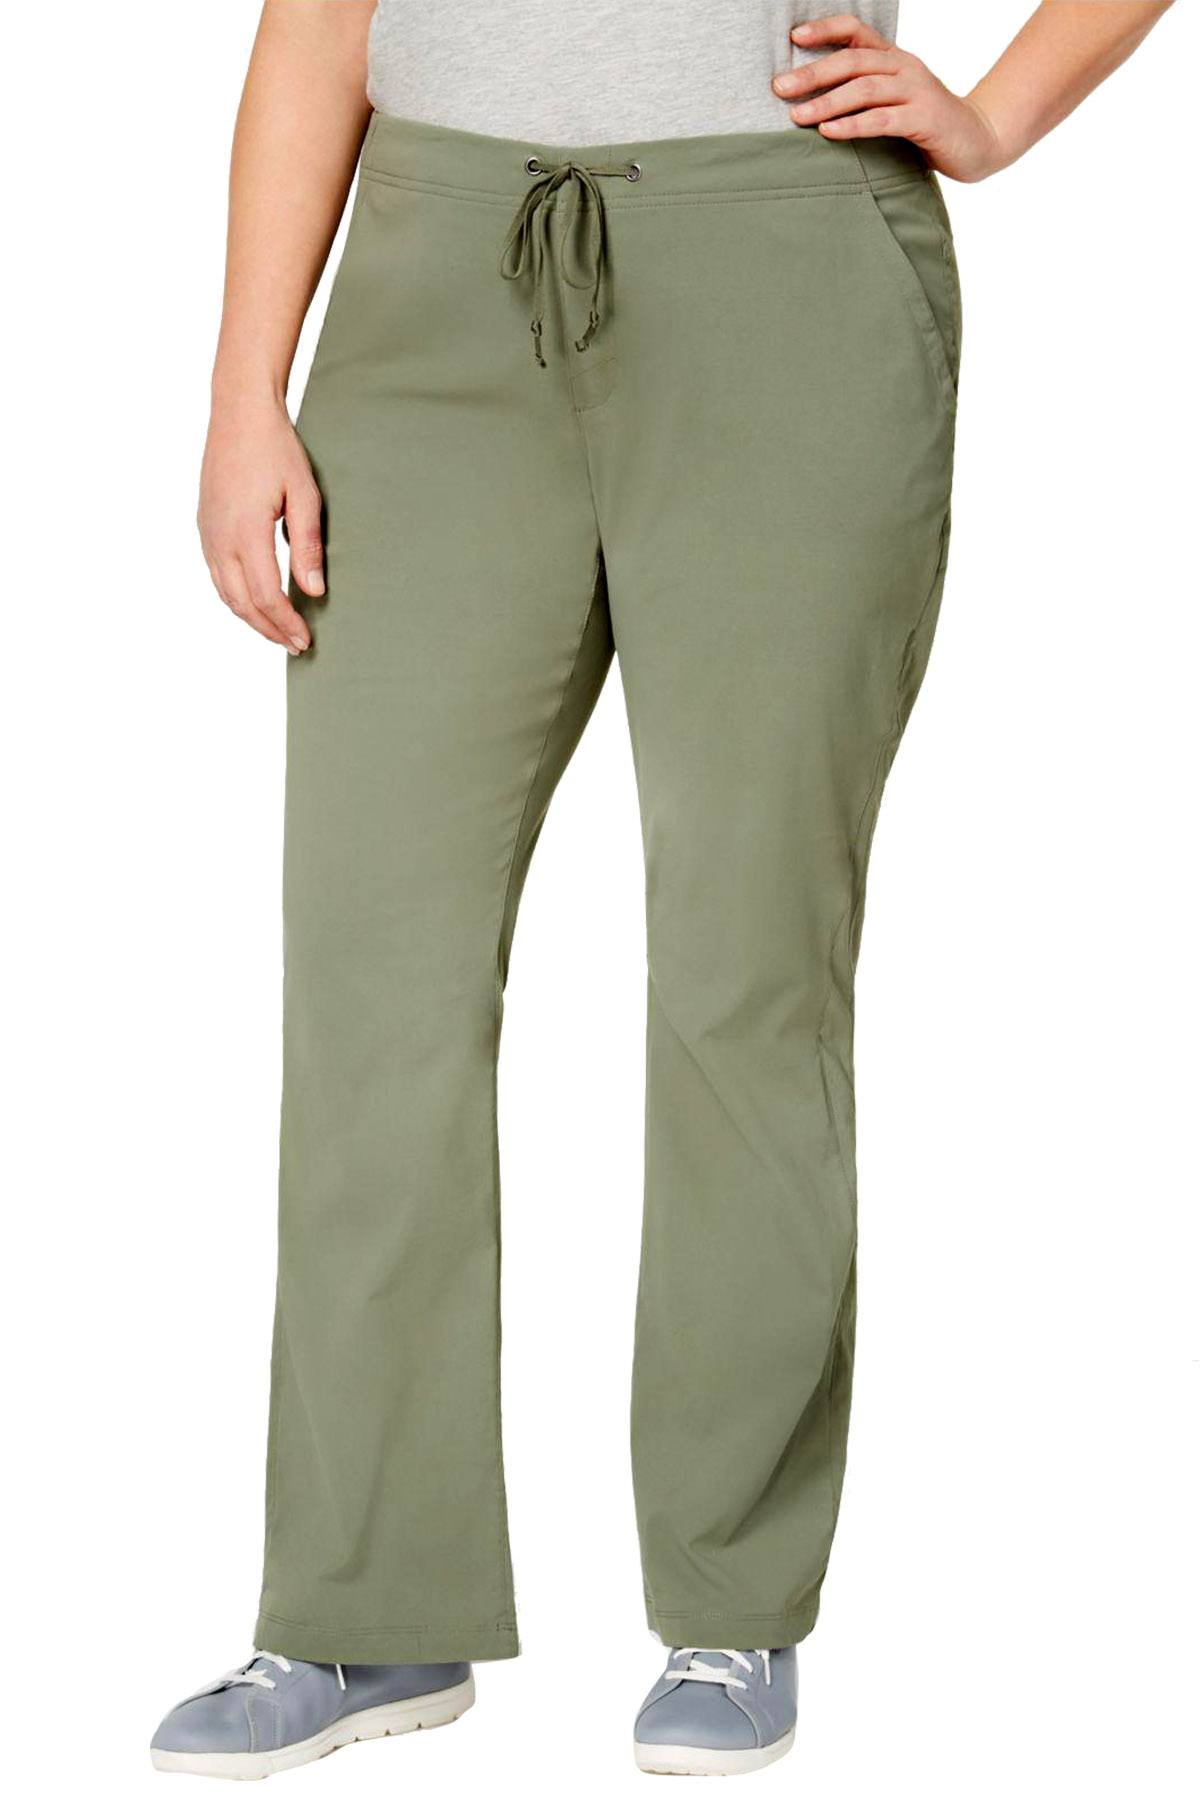 Columbia PLUS Cypress Anytime Outdoor Bootcut Pant